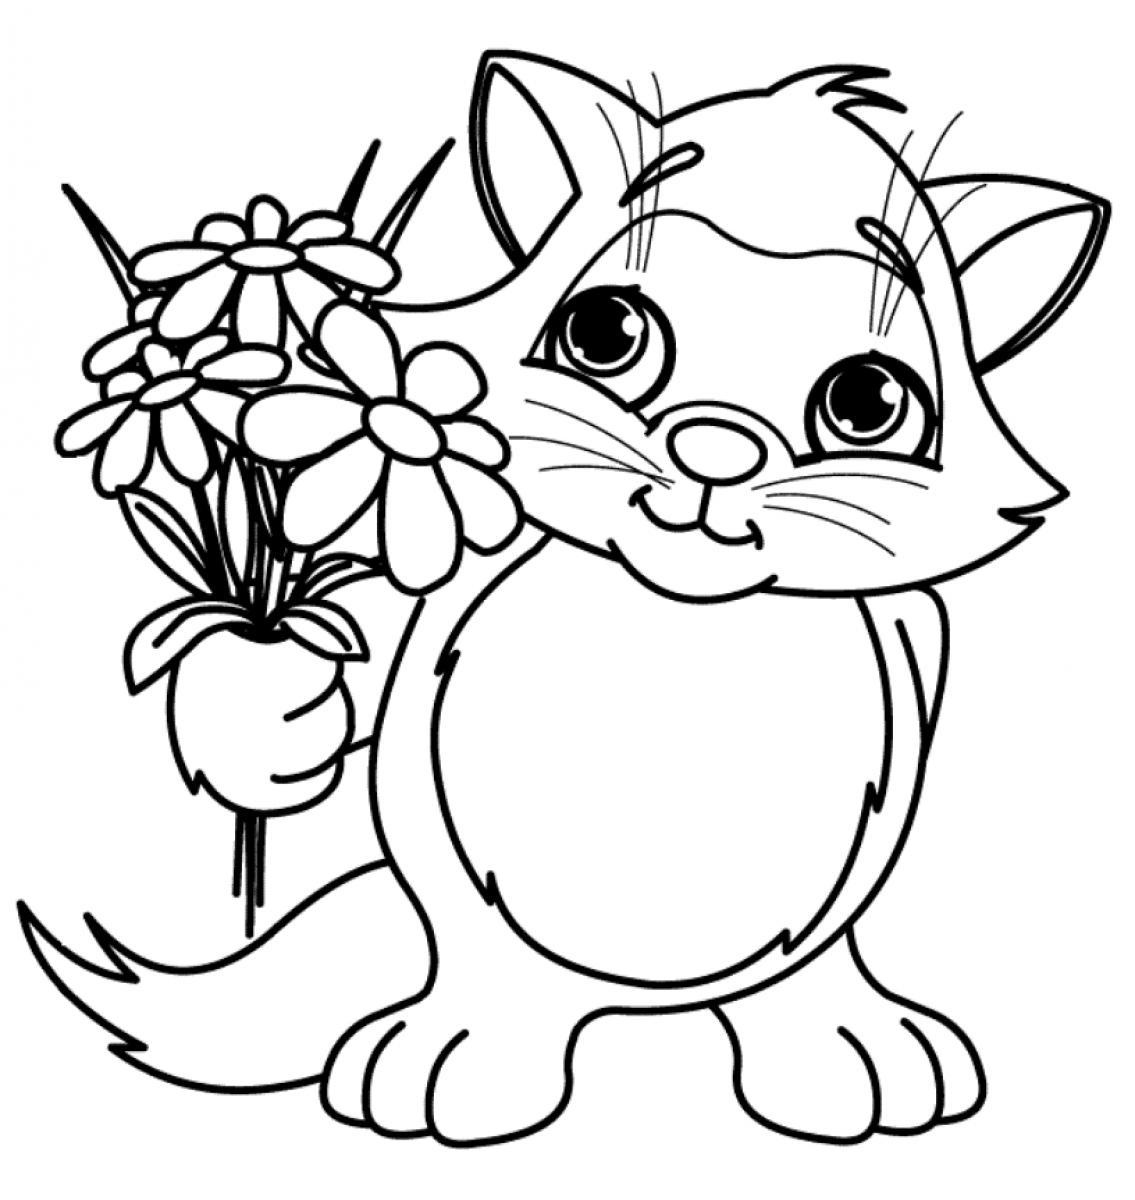 1135x1200 Unique Spring Coloring Pages Printable Logo And Design Ideas